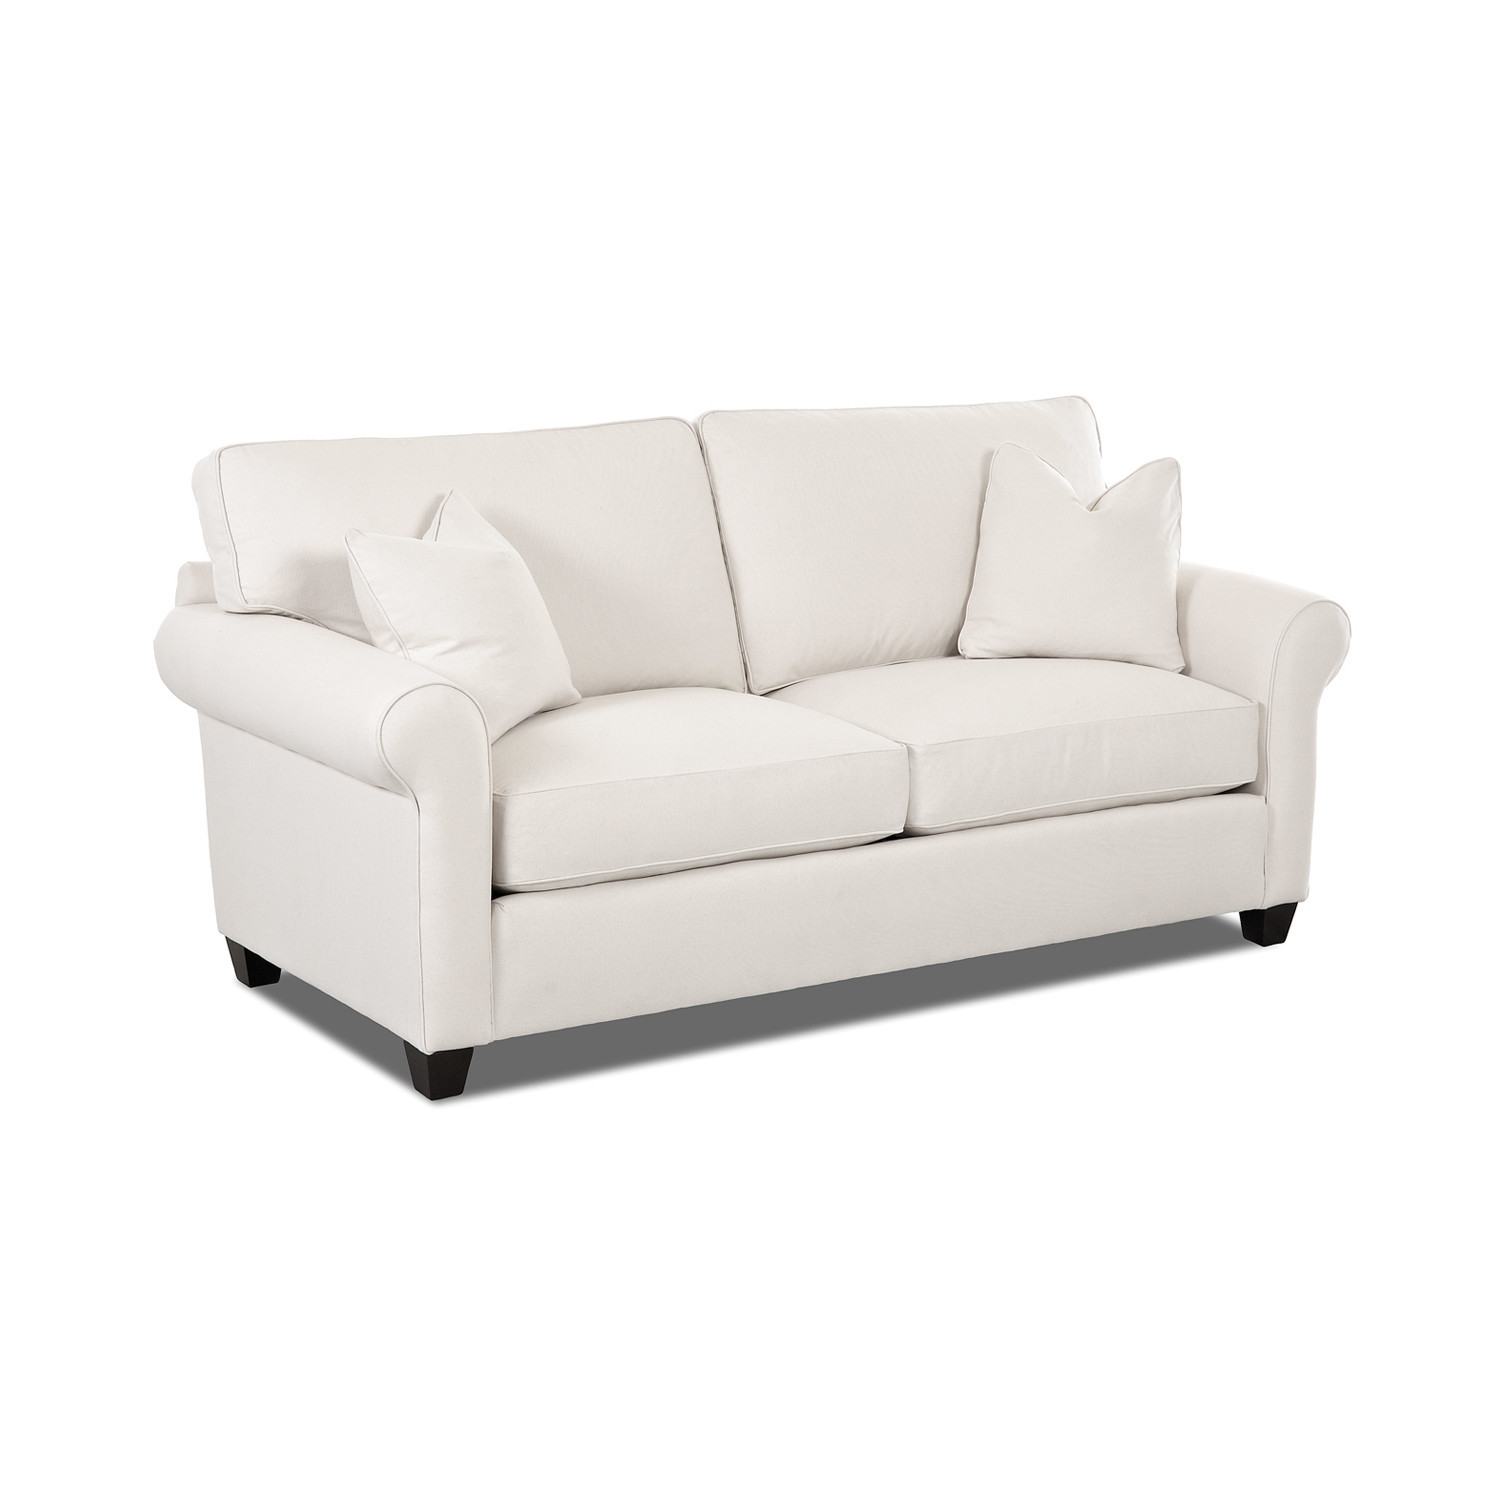 Best ideas about Wayfair Sectional Sofa . Save or Pin Wayfair Custom Upholstery Eliza Sofa & Reviews Now.